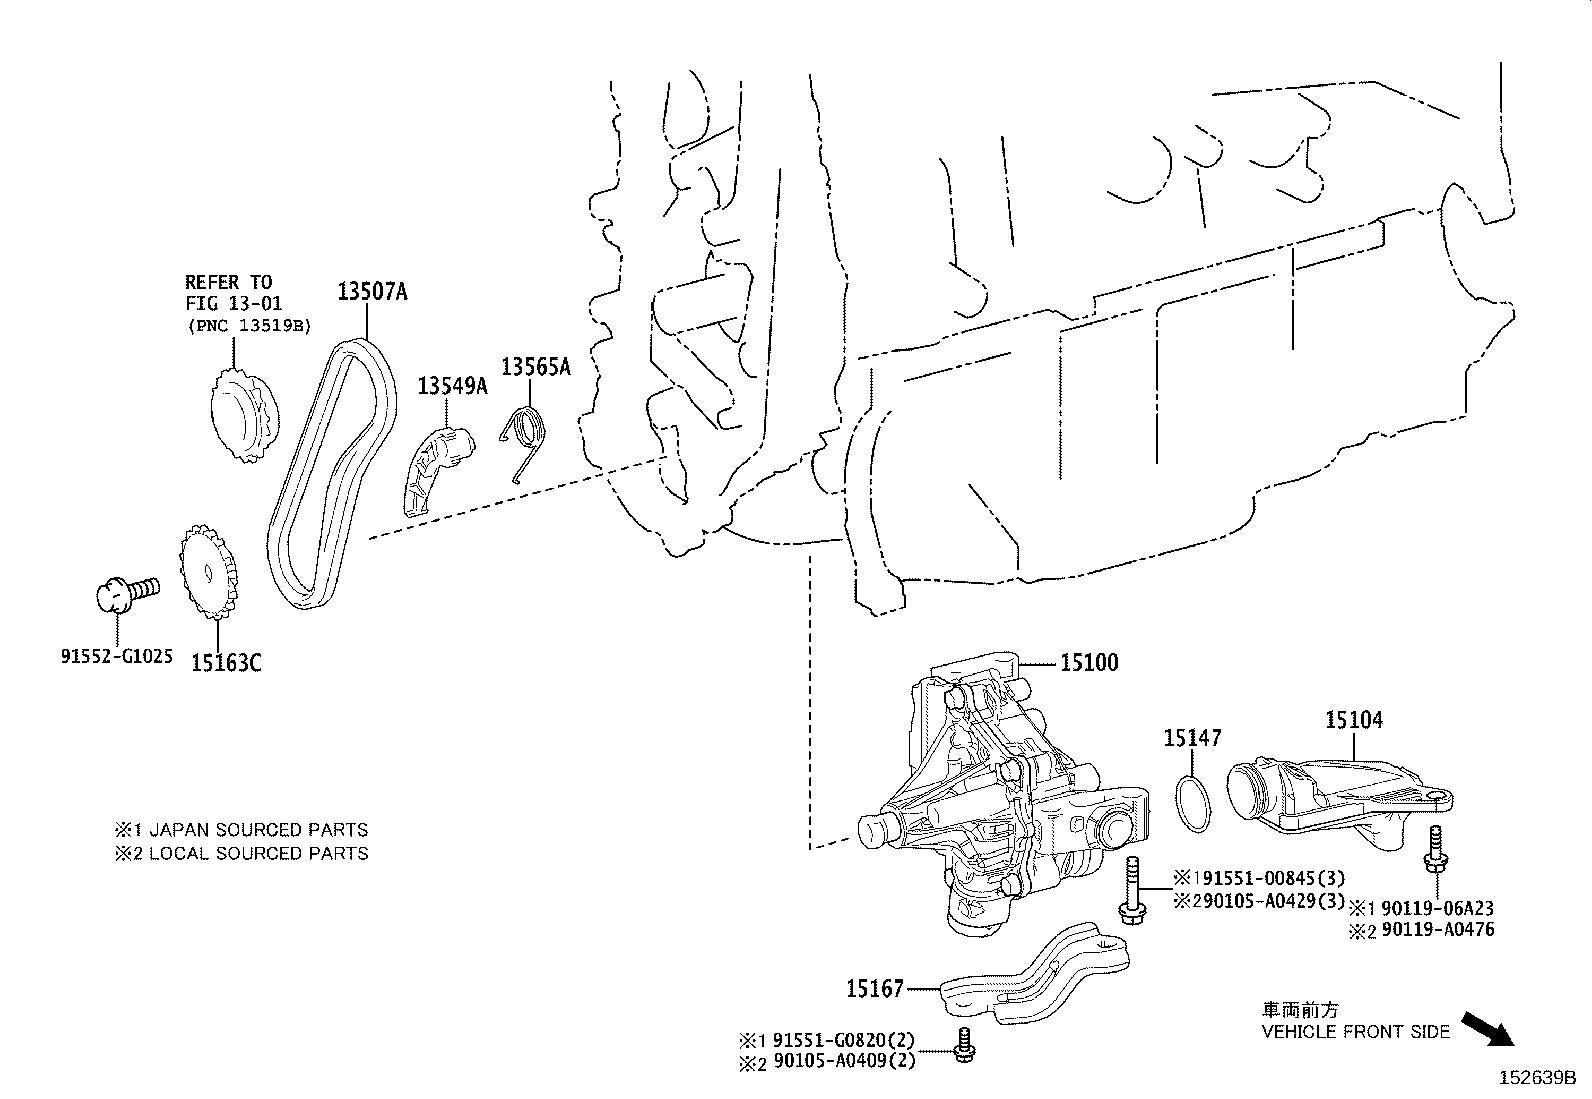 Toyota Camry Engine Oil Pump An Engine Oil Pump For A